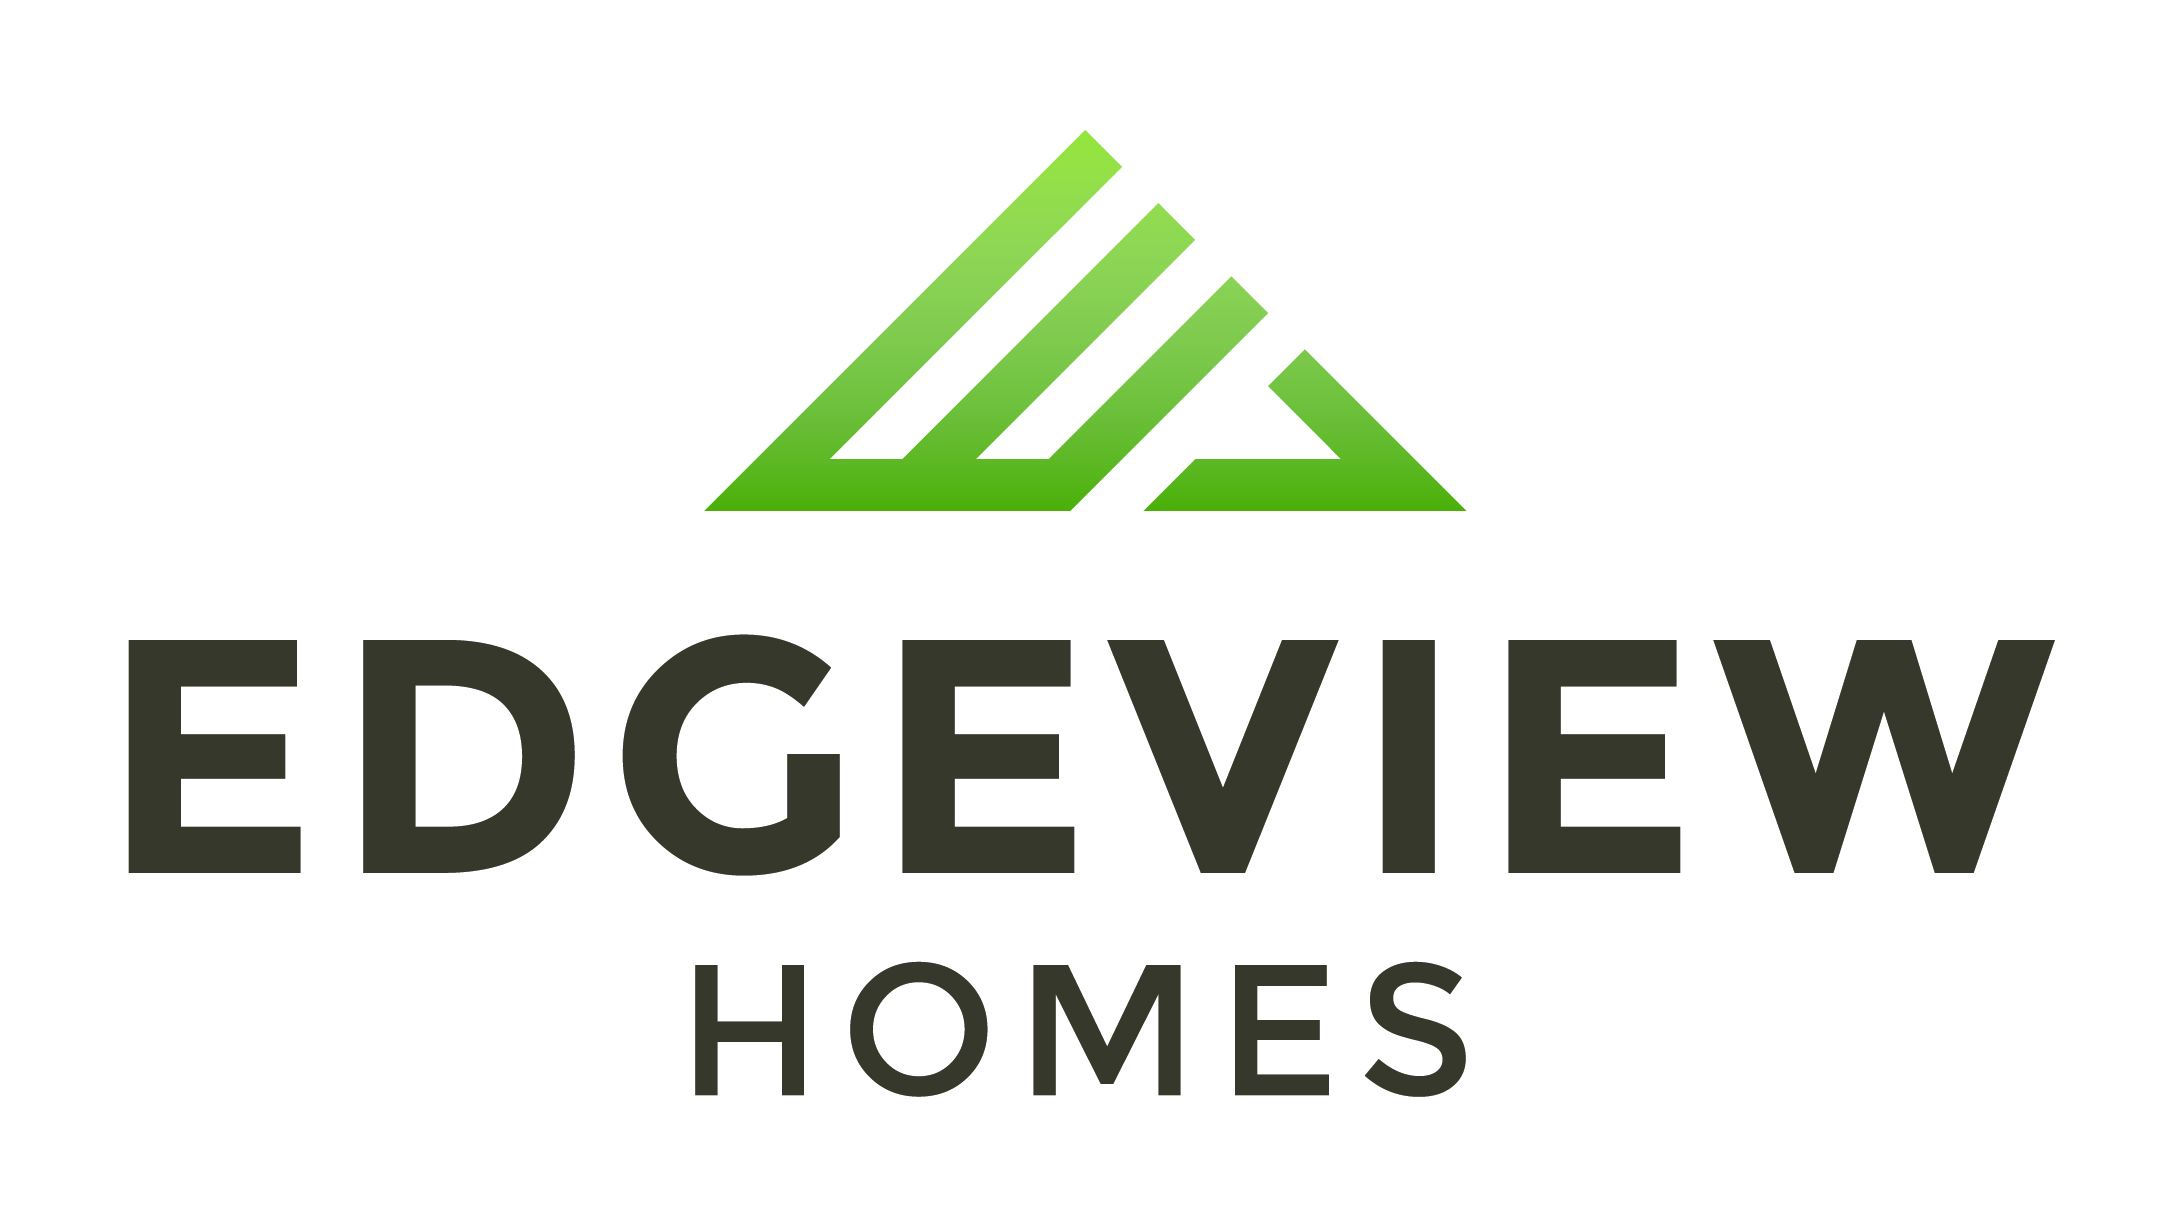 edgeview-homes-logo